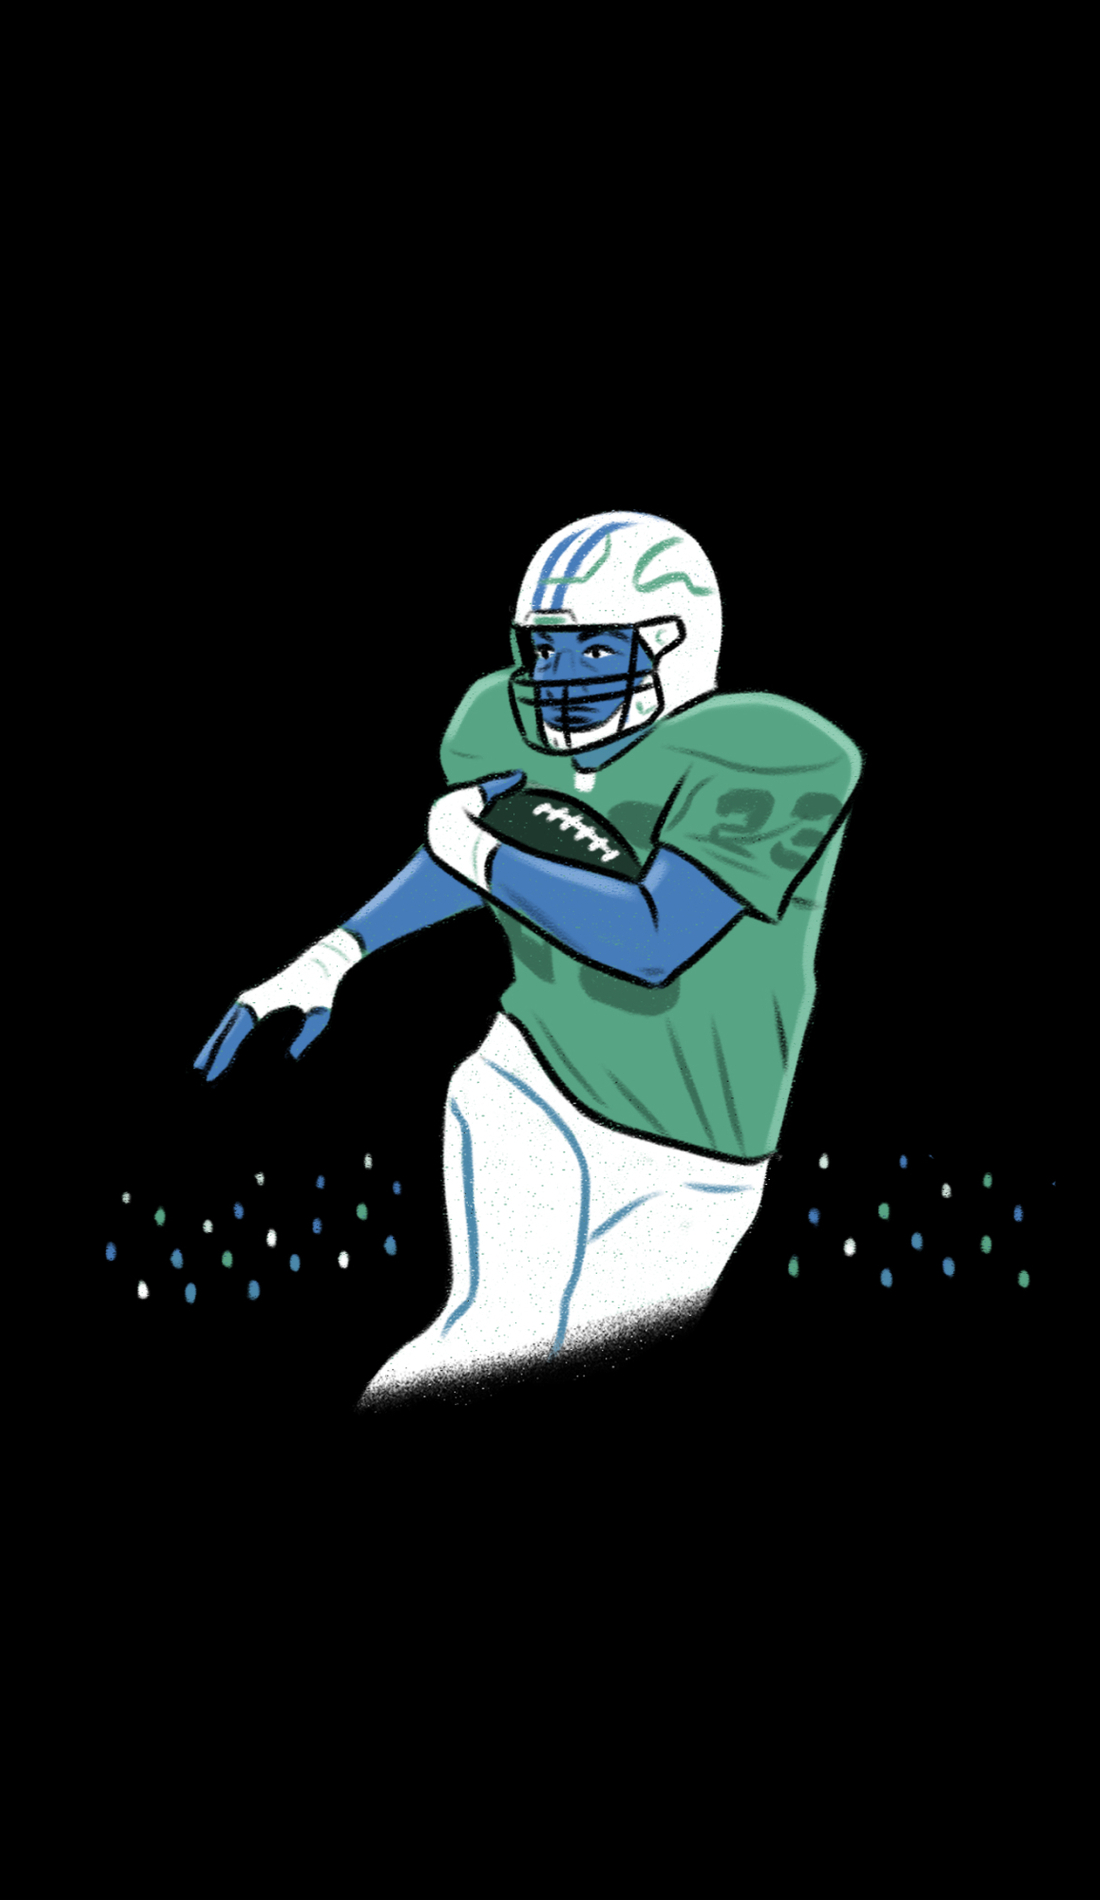 A Fresno State Bulldogs Football live event